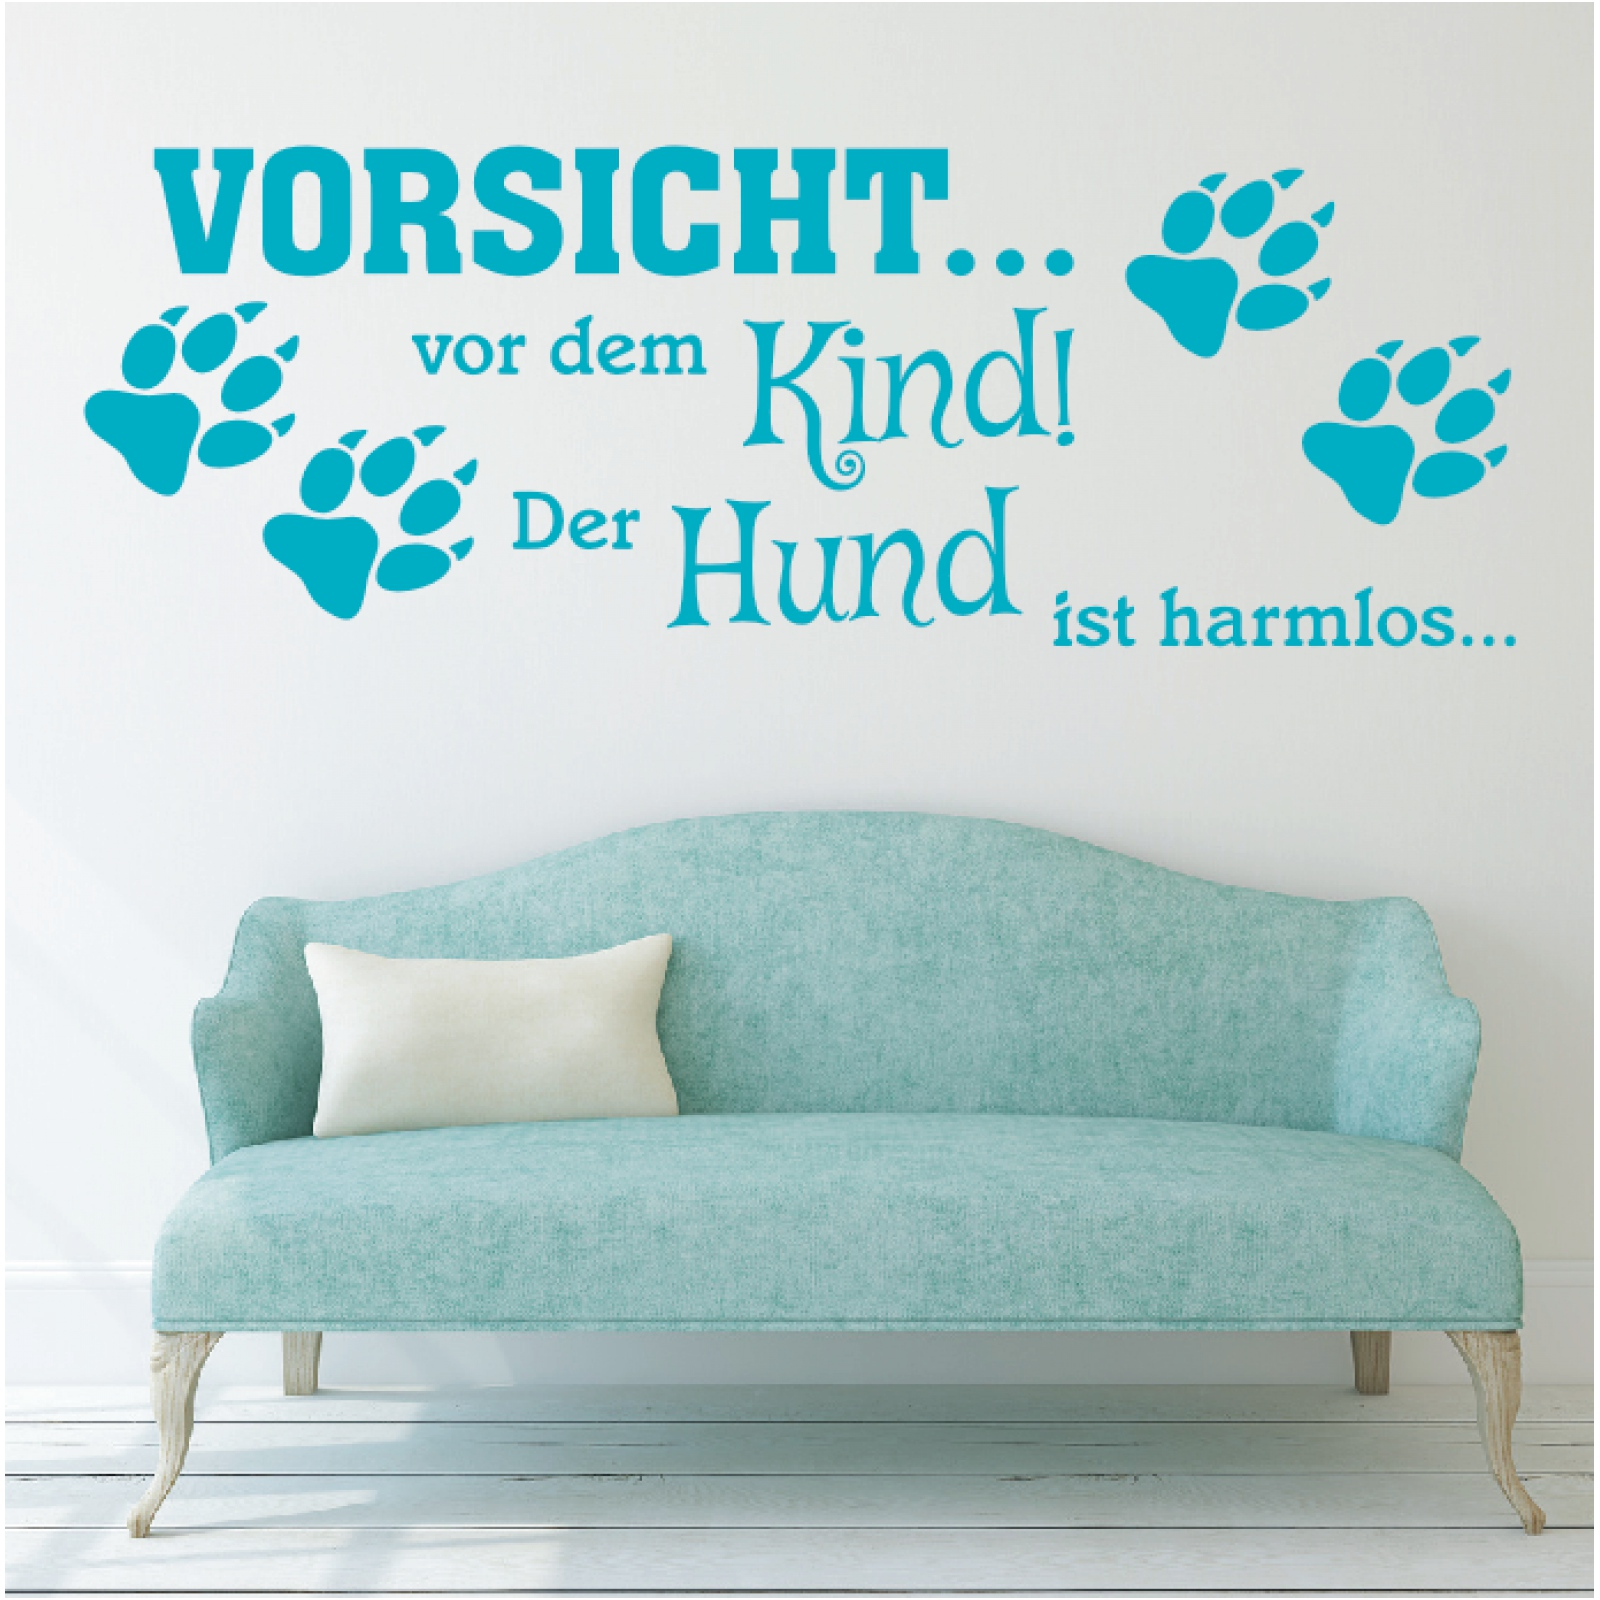 wandtattoo spruch vorsicht vor kind hund harmlos wandaufkleber wandsticker 2 ebay. Black Bedroom Furniture Sets. Home Design Ideas